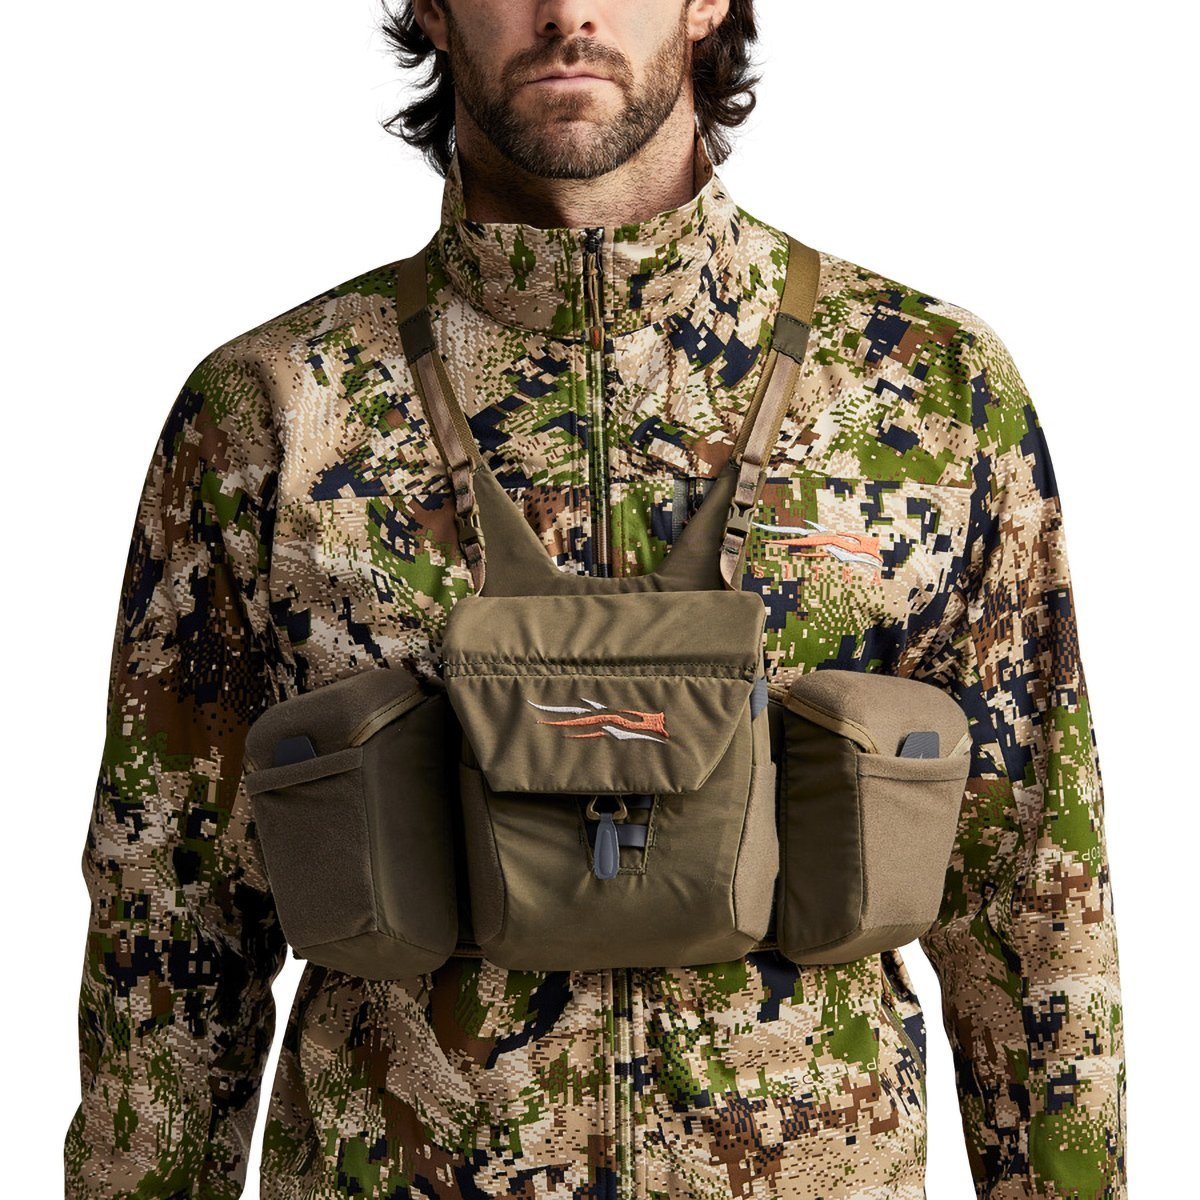 Sitka-Gear-Mountain-Optics-Binocular-Harness-Pyrite-Solid-Front-With-Pockets-Square.jpg